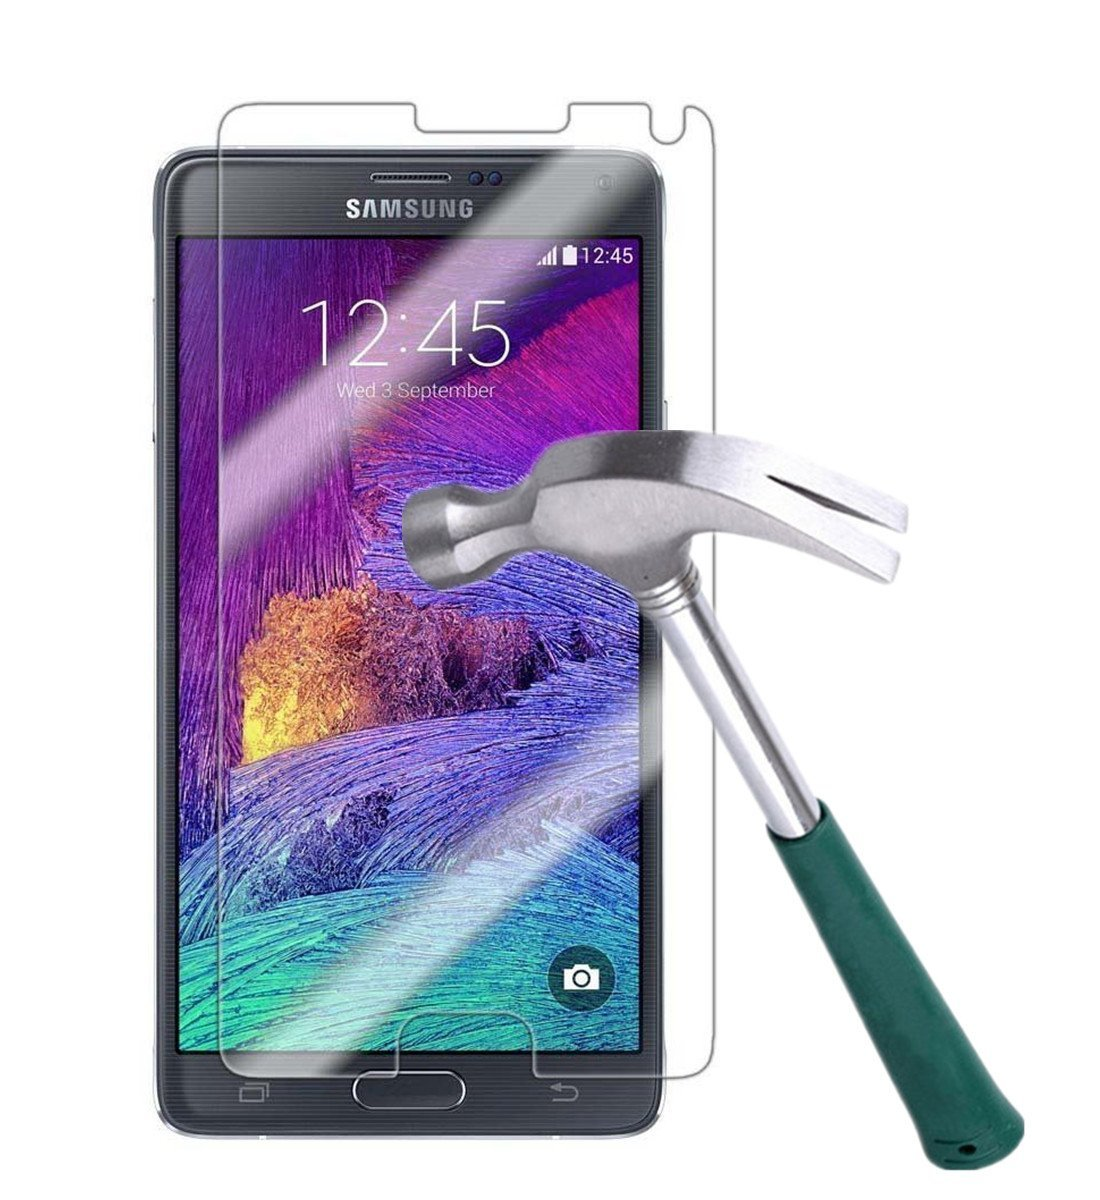 Galaxy Note 4 Screen Protector,TANTEK [Bubble-Free][HD-Clear][Anti-Scratch][Anti-Glare][Anti-Fingerprint] Premium Tempered Glass Screen Protector for Samsung Galaxy Note 4,[Lifetime Warranty]-[1Pack]